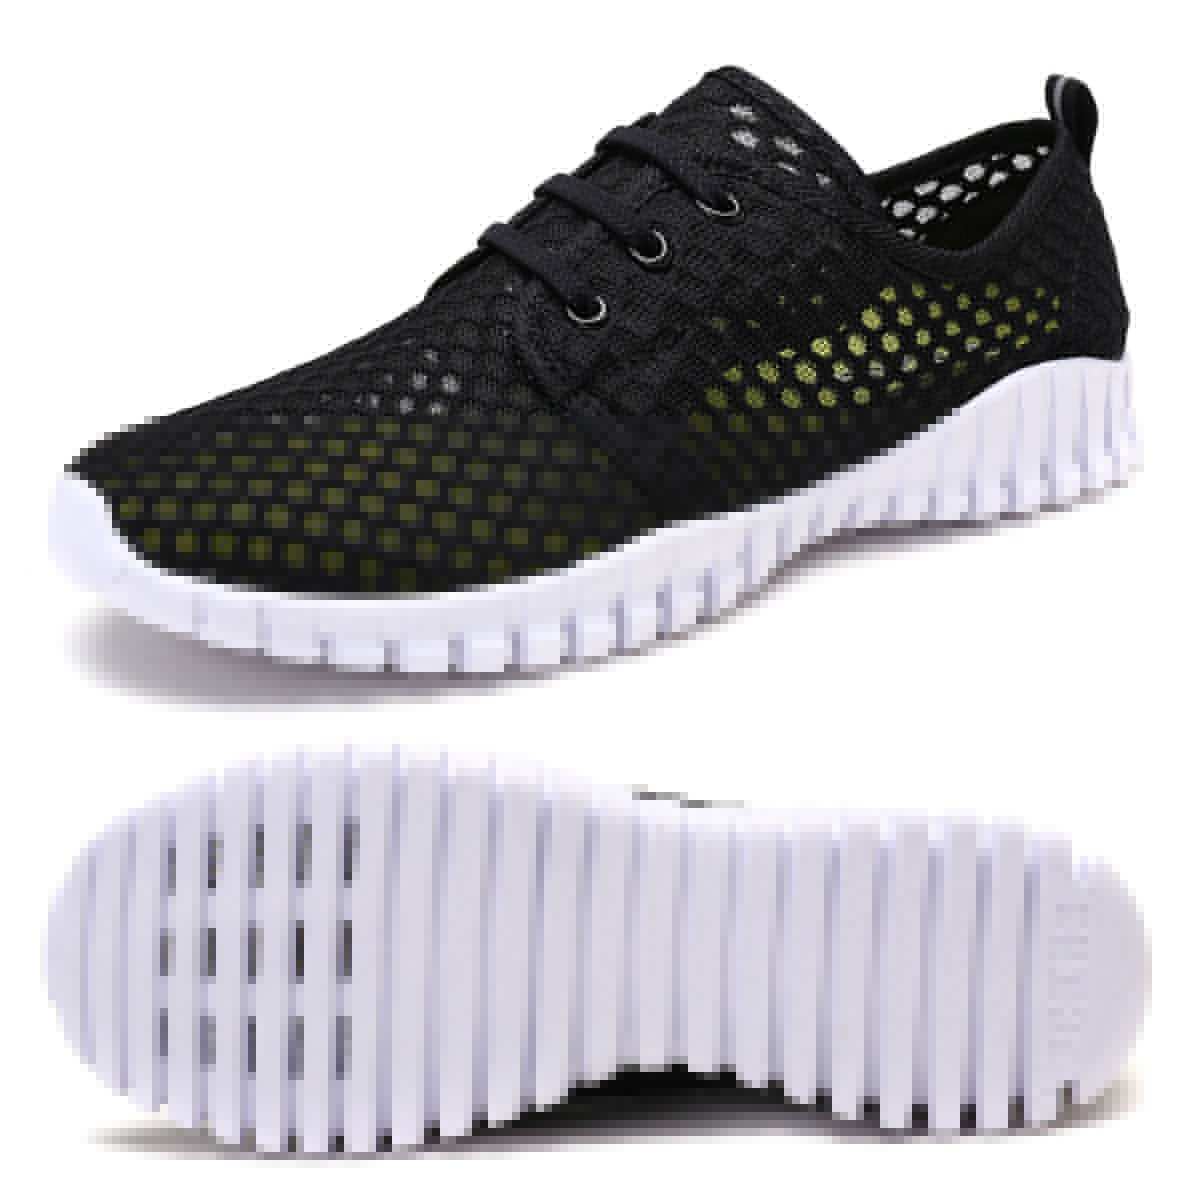 FCKEE Quick Drying Mesh Water Aqua Shoes for Men and Women,MBD,Black-35